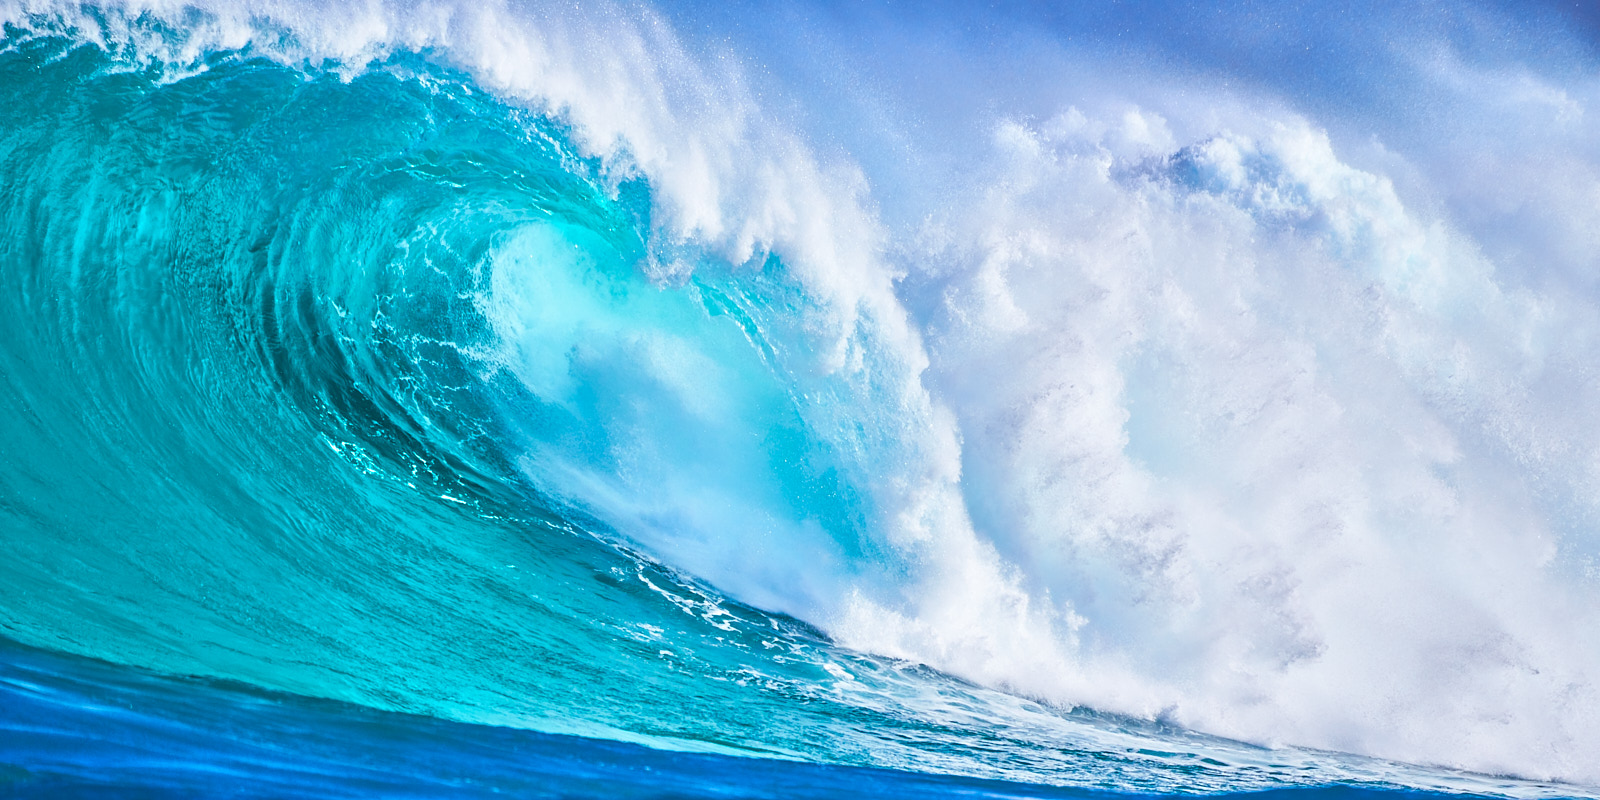 The very first time I captured the beauty and power of Peahi (Jaws).  I can ride out here all day and photograph this wave and...